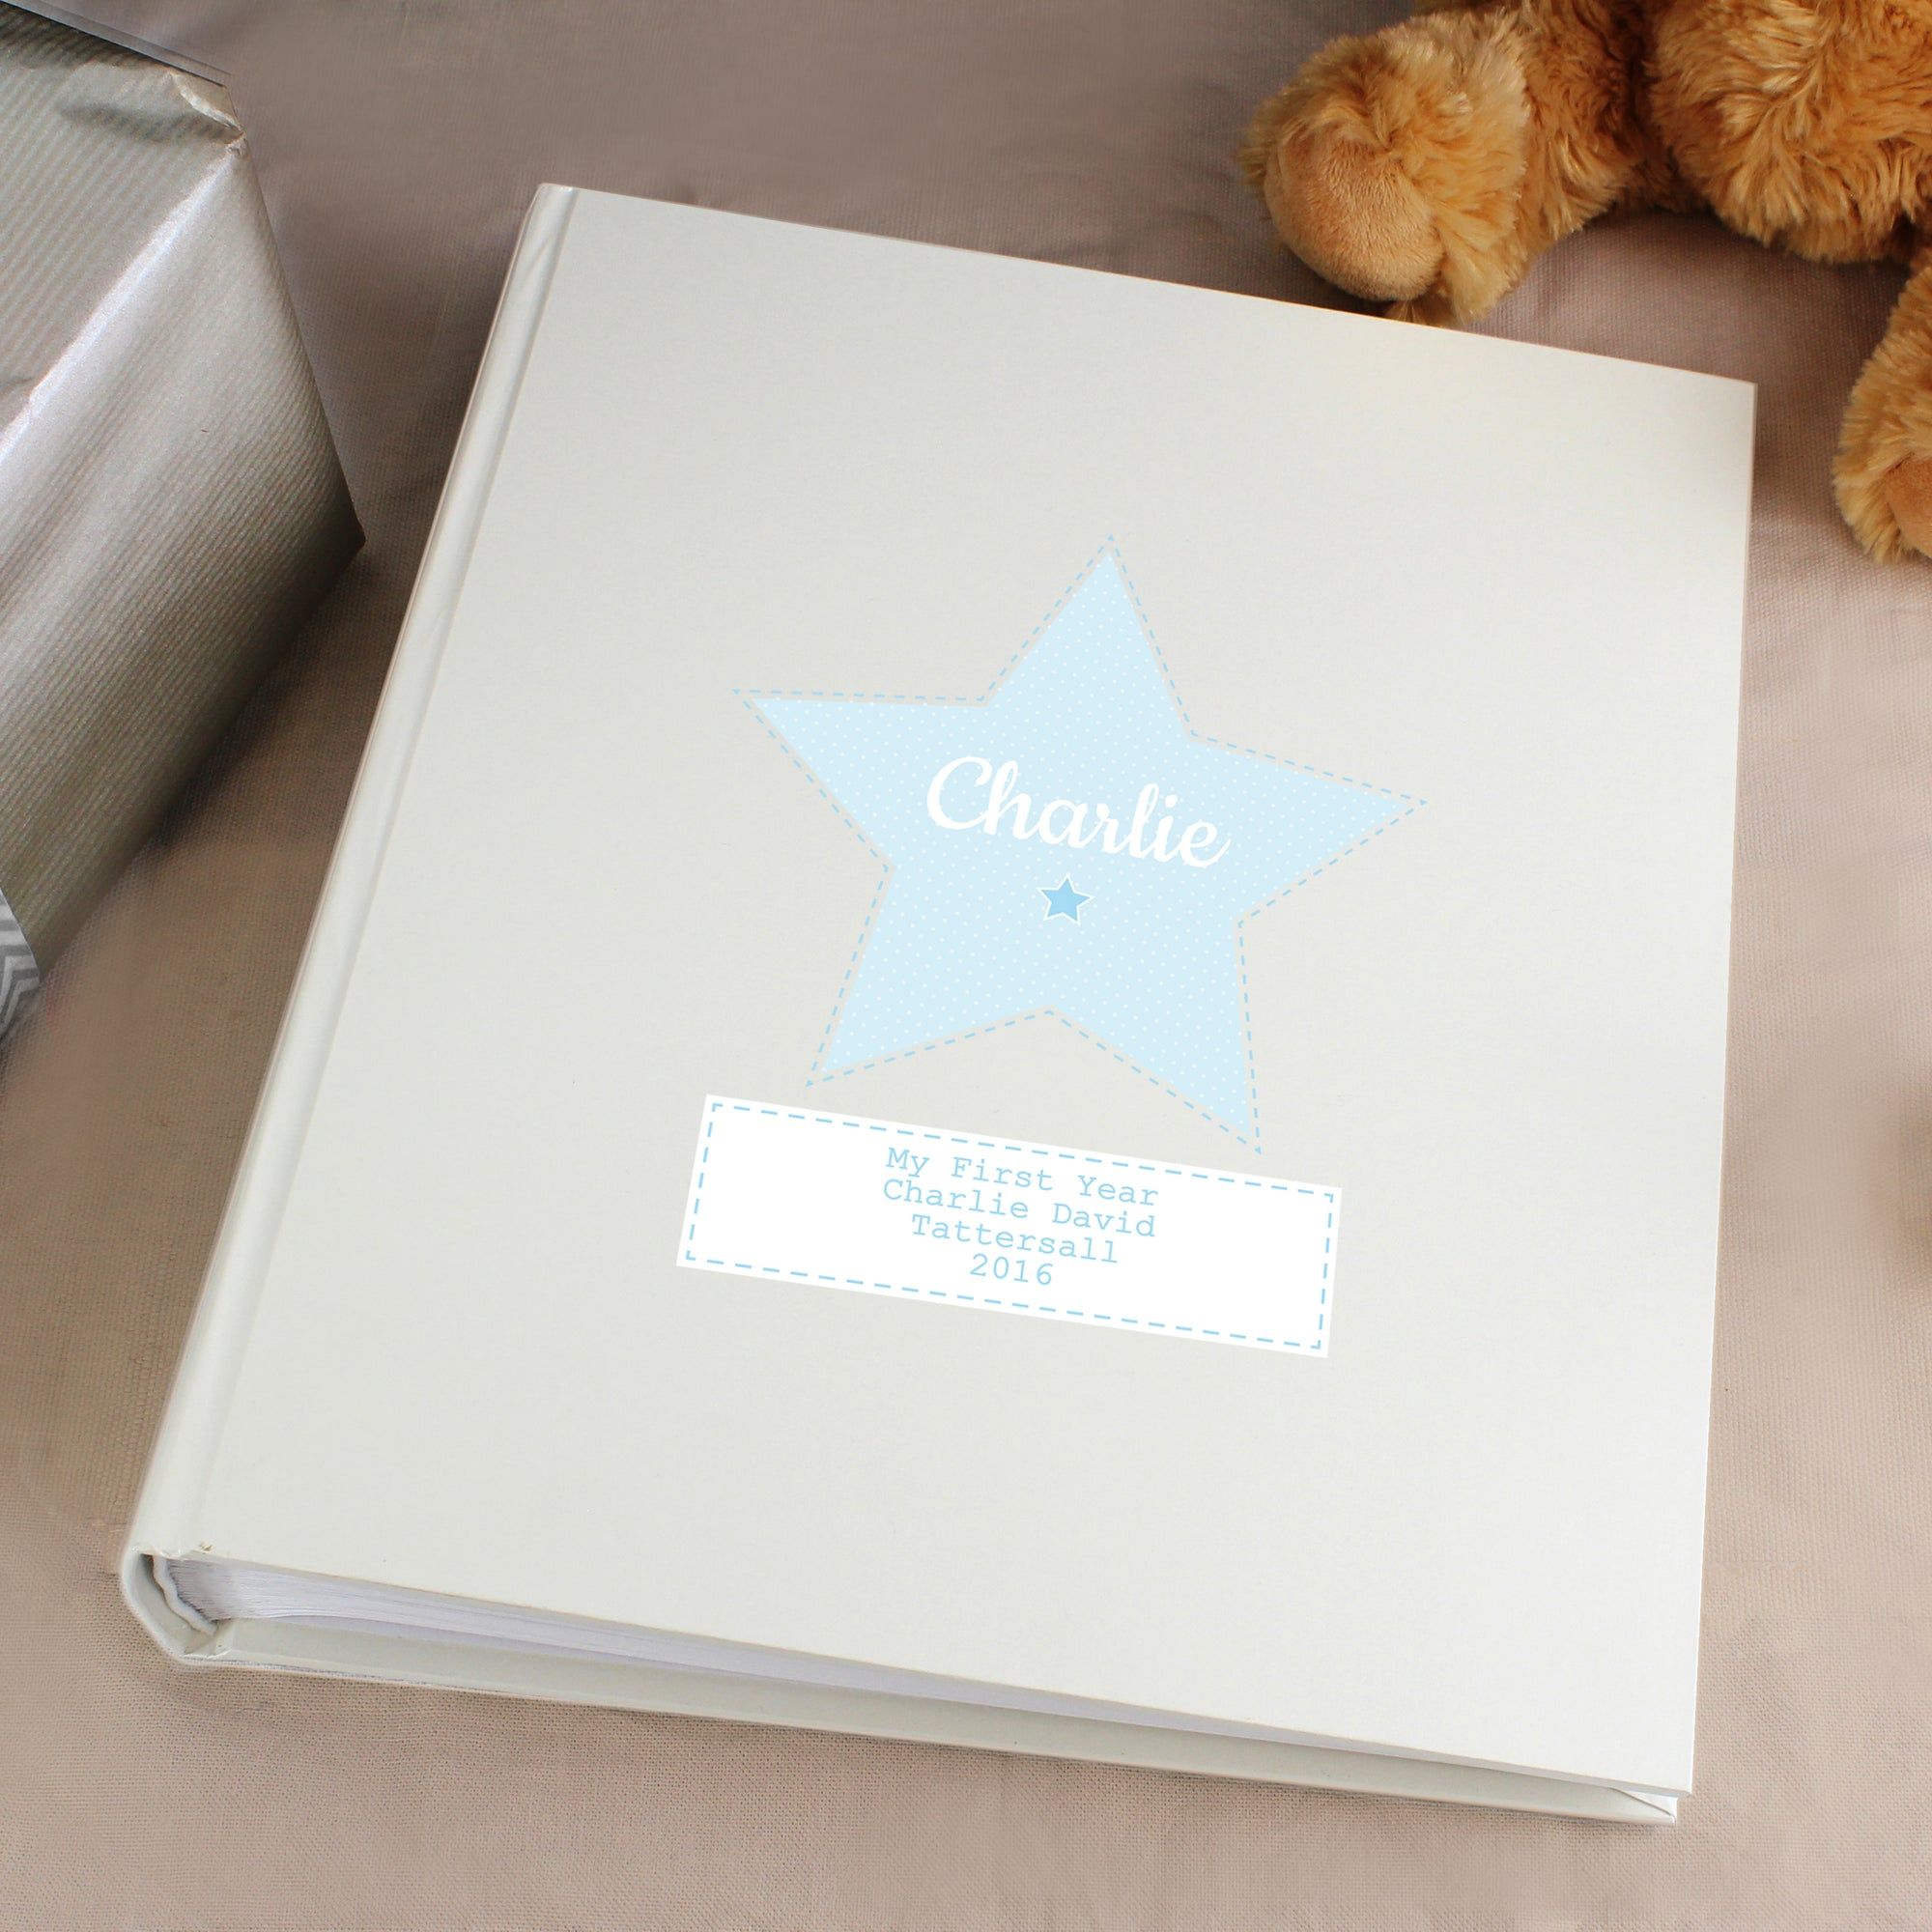 Personalised white satin sheen photo album which has a blue star in the centre of the front cover. The cover can be personalised with a name of your choice which will be printed in a modern white font inside the blue star. Beneath the star is a white box and you can add your own special information over up to 4 lines which will be printed in blue text.